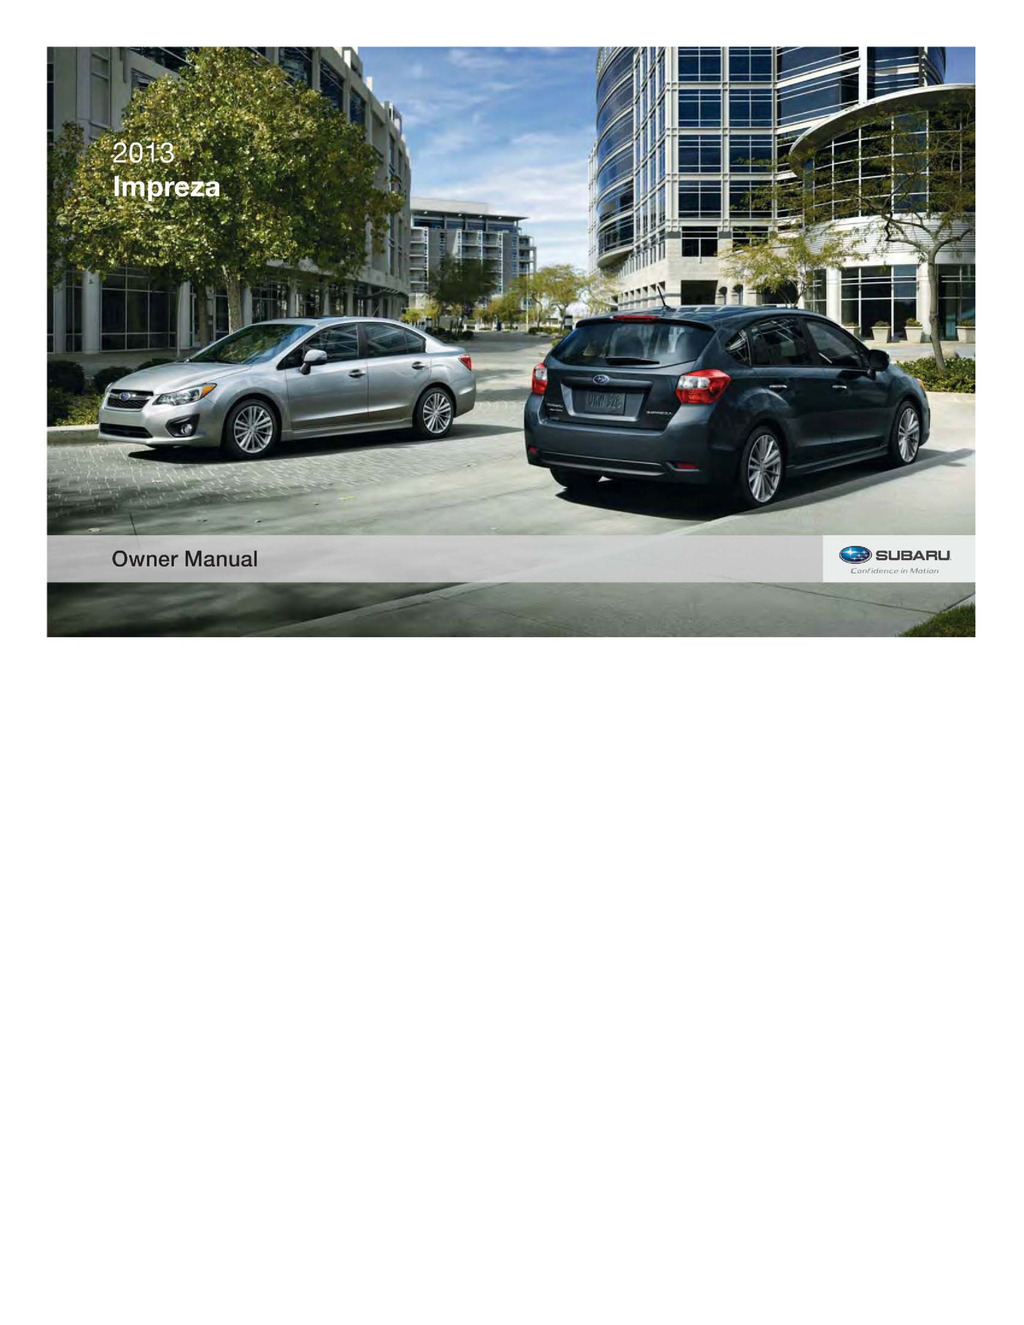 2013 Subaru Impreza owners manual